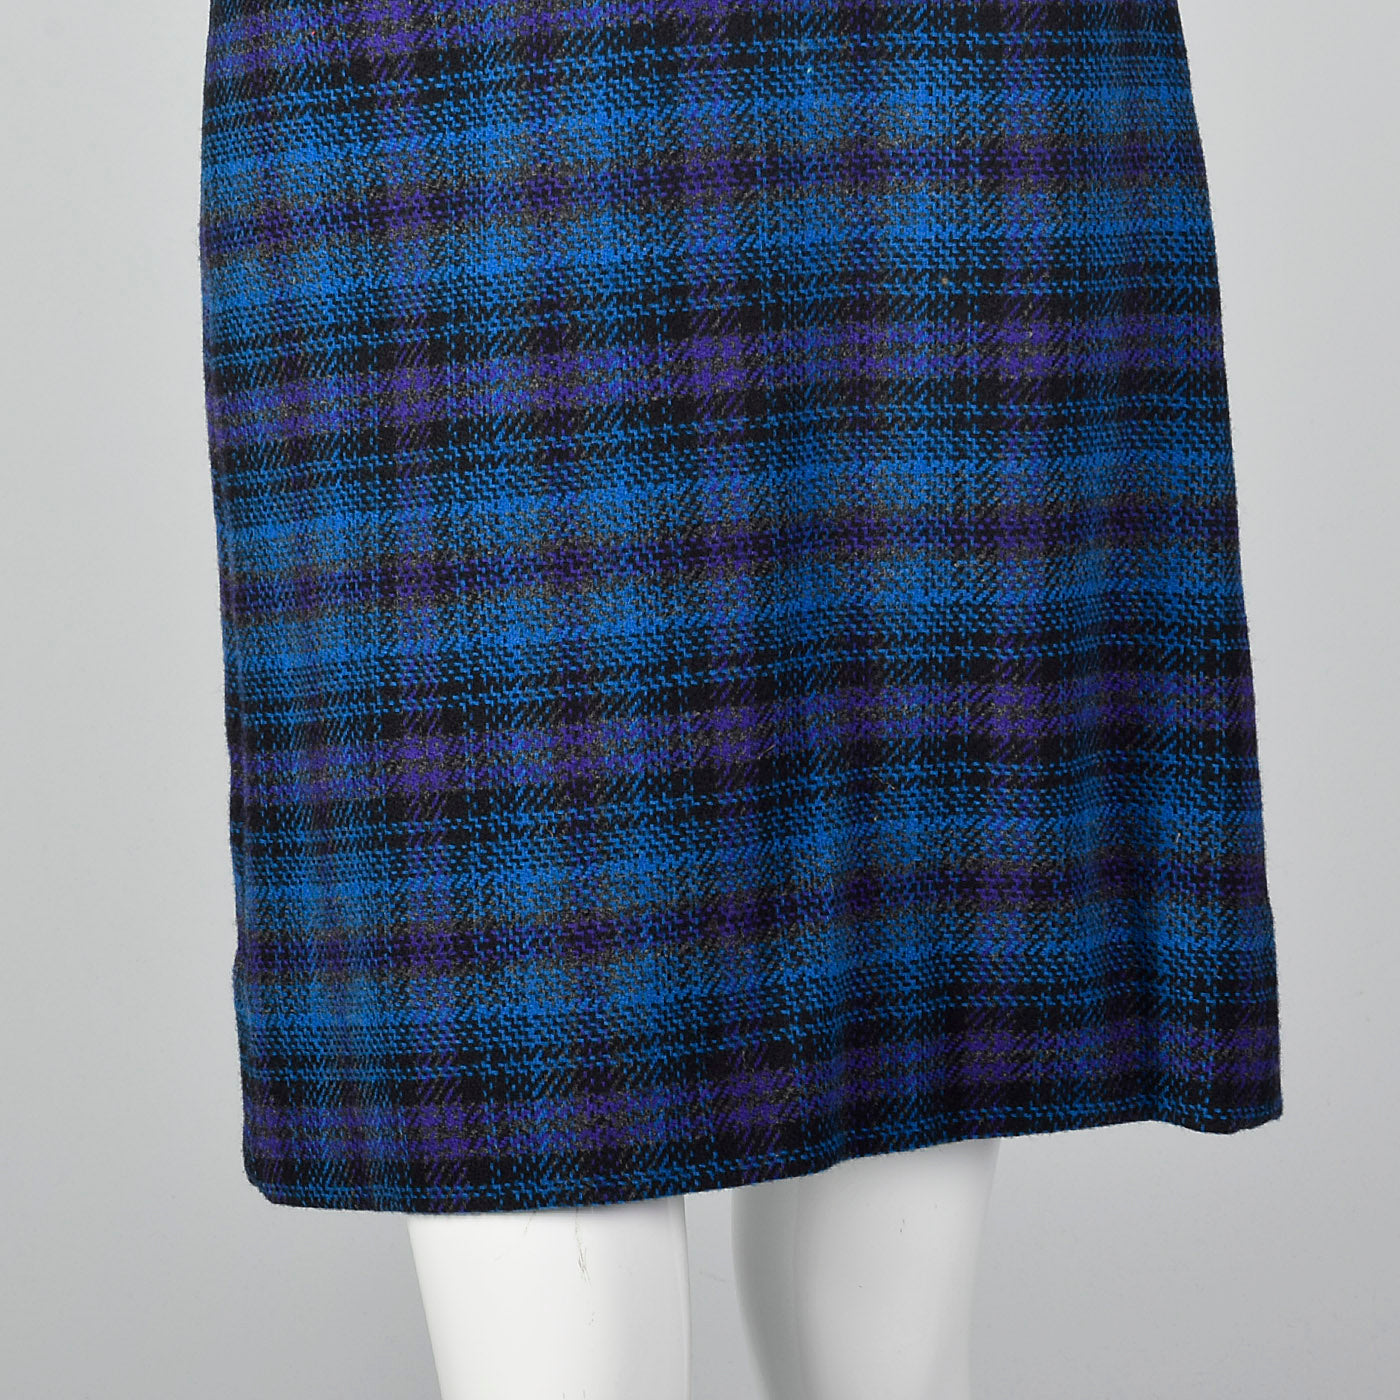 1960s Pendleton Wool Skirt Suit in Blue and Purple Plaid